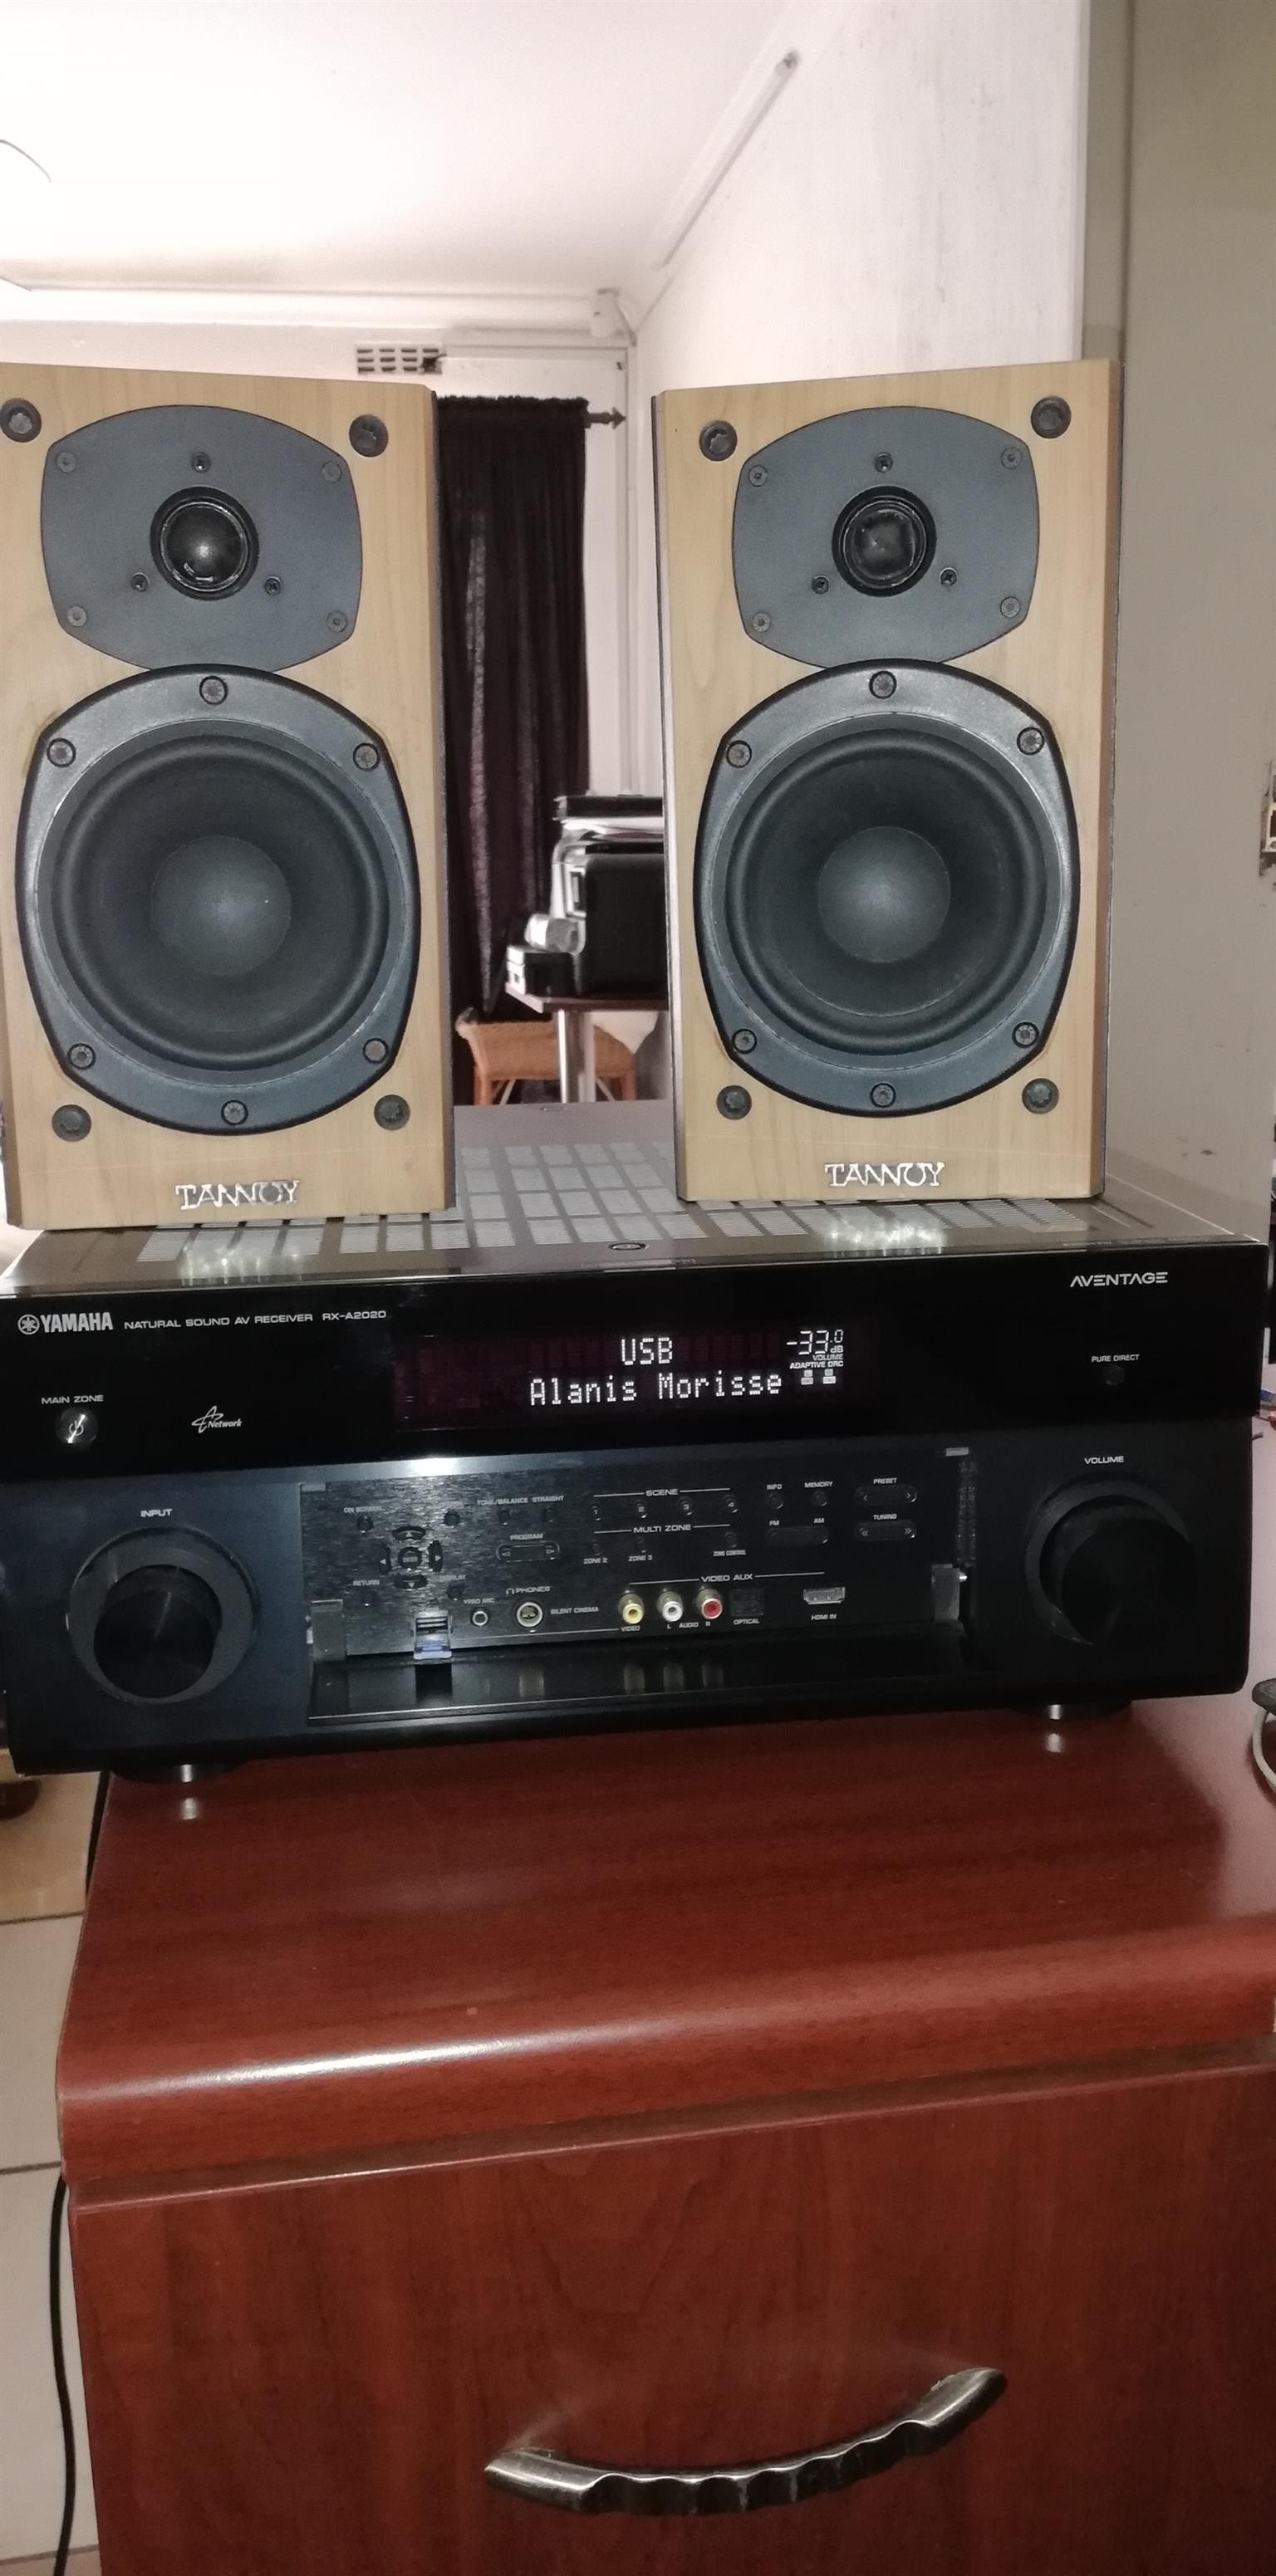 Yamaha Aventage RXA-2020 9.1 Channel Home Cinema DTS Amplifier with 3 Zones and with 2 Tannoy 70watt Shelf Standing Speakers for free and all in Good working condition.